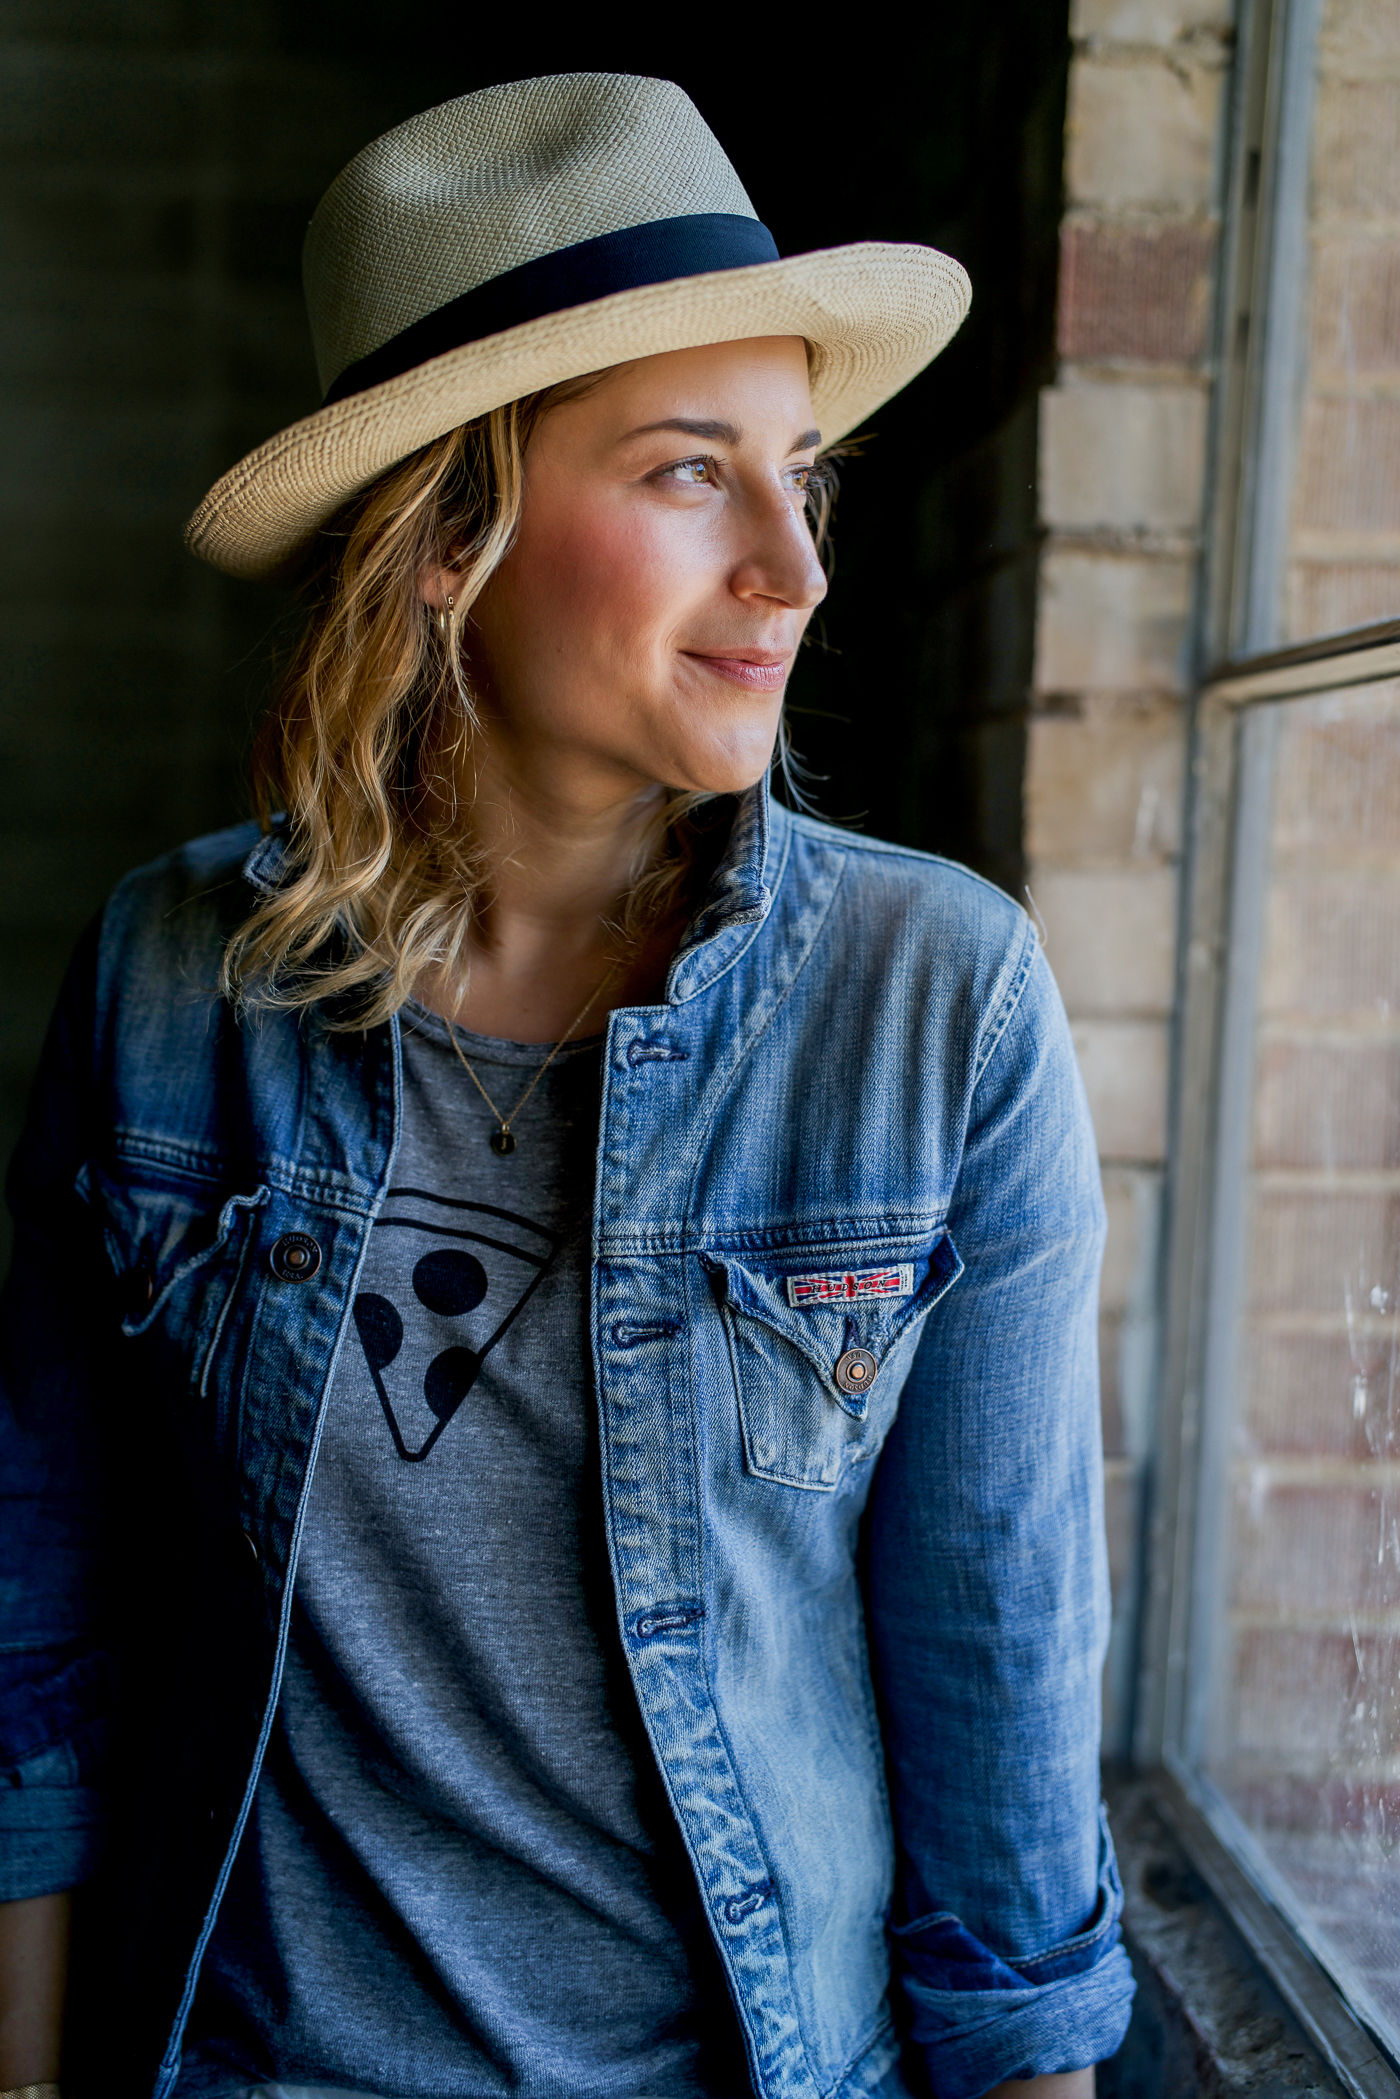 Toronto fashion and lifestyle blogger is wearing the Chaser Brand Daily Rituals Tee with a Hudson Jeans denim jacket and straw hat from Aritzia